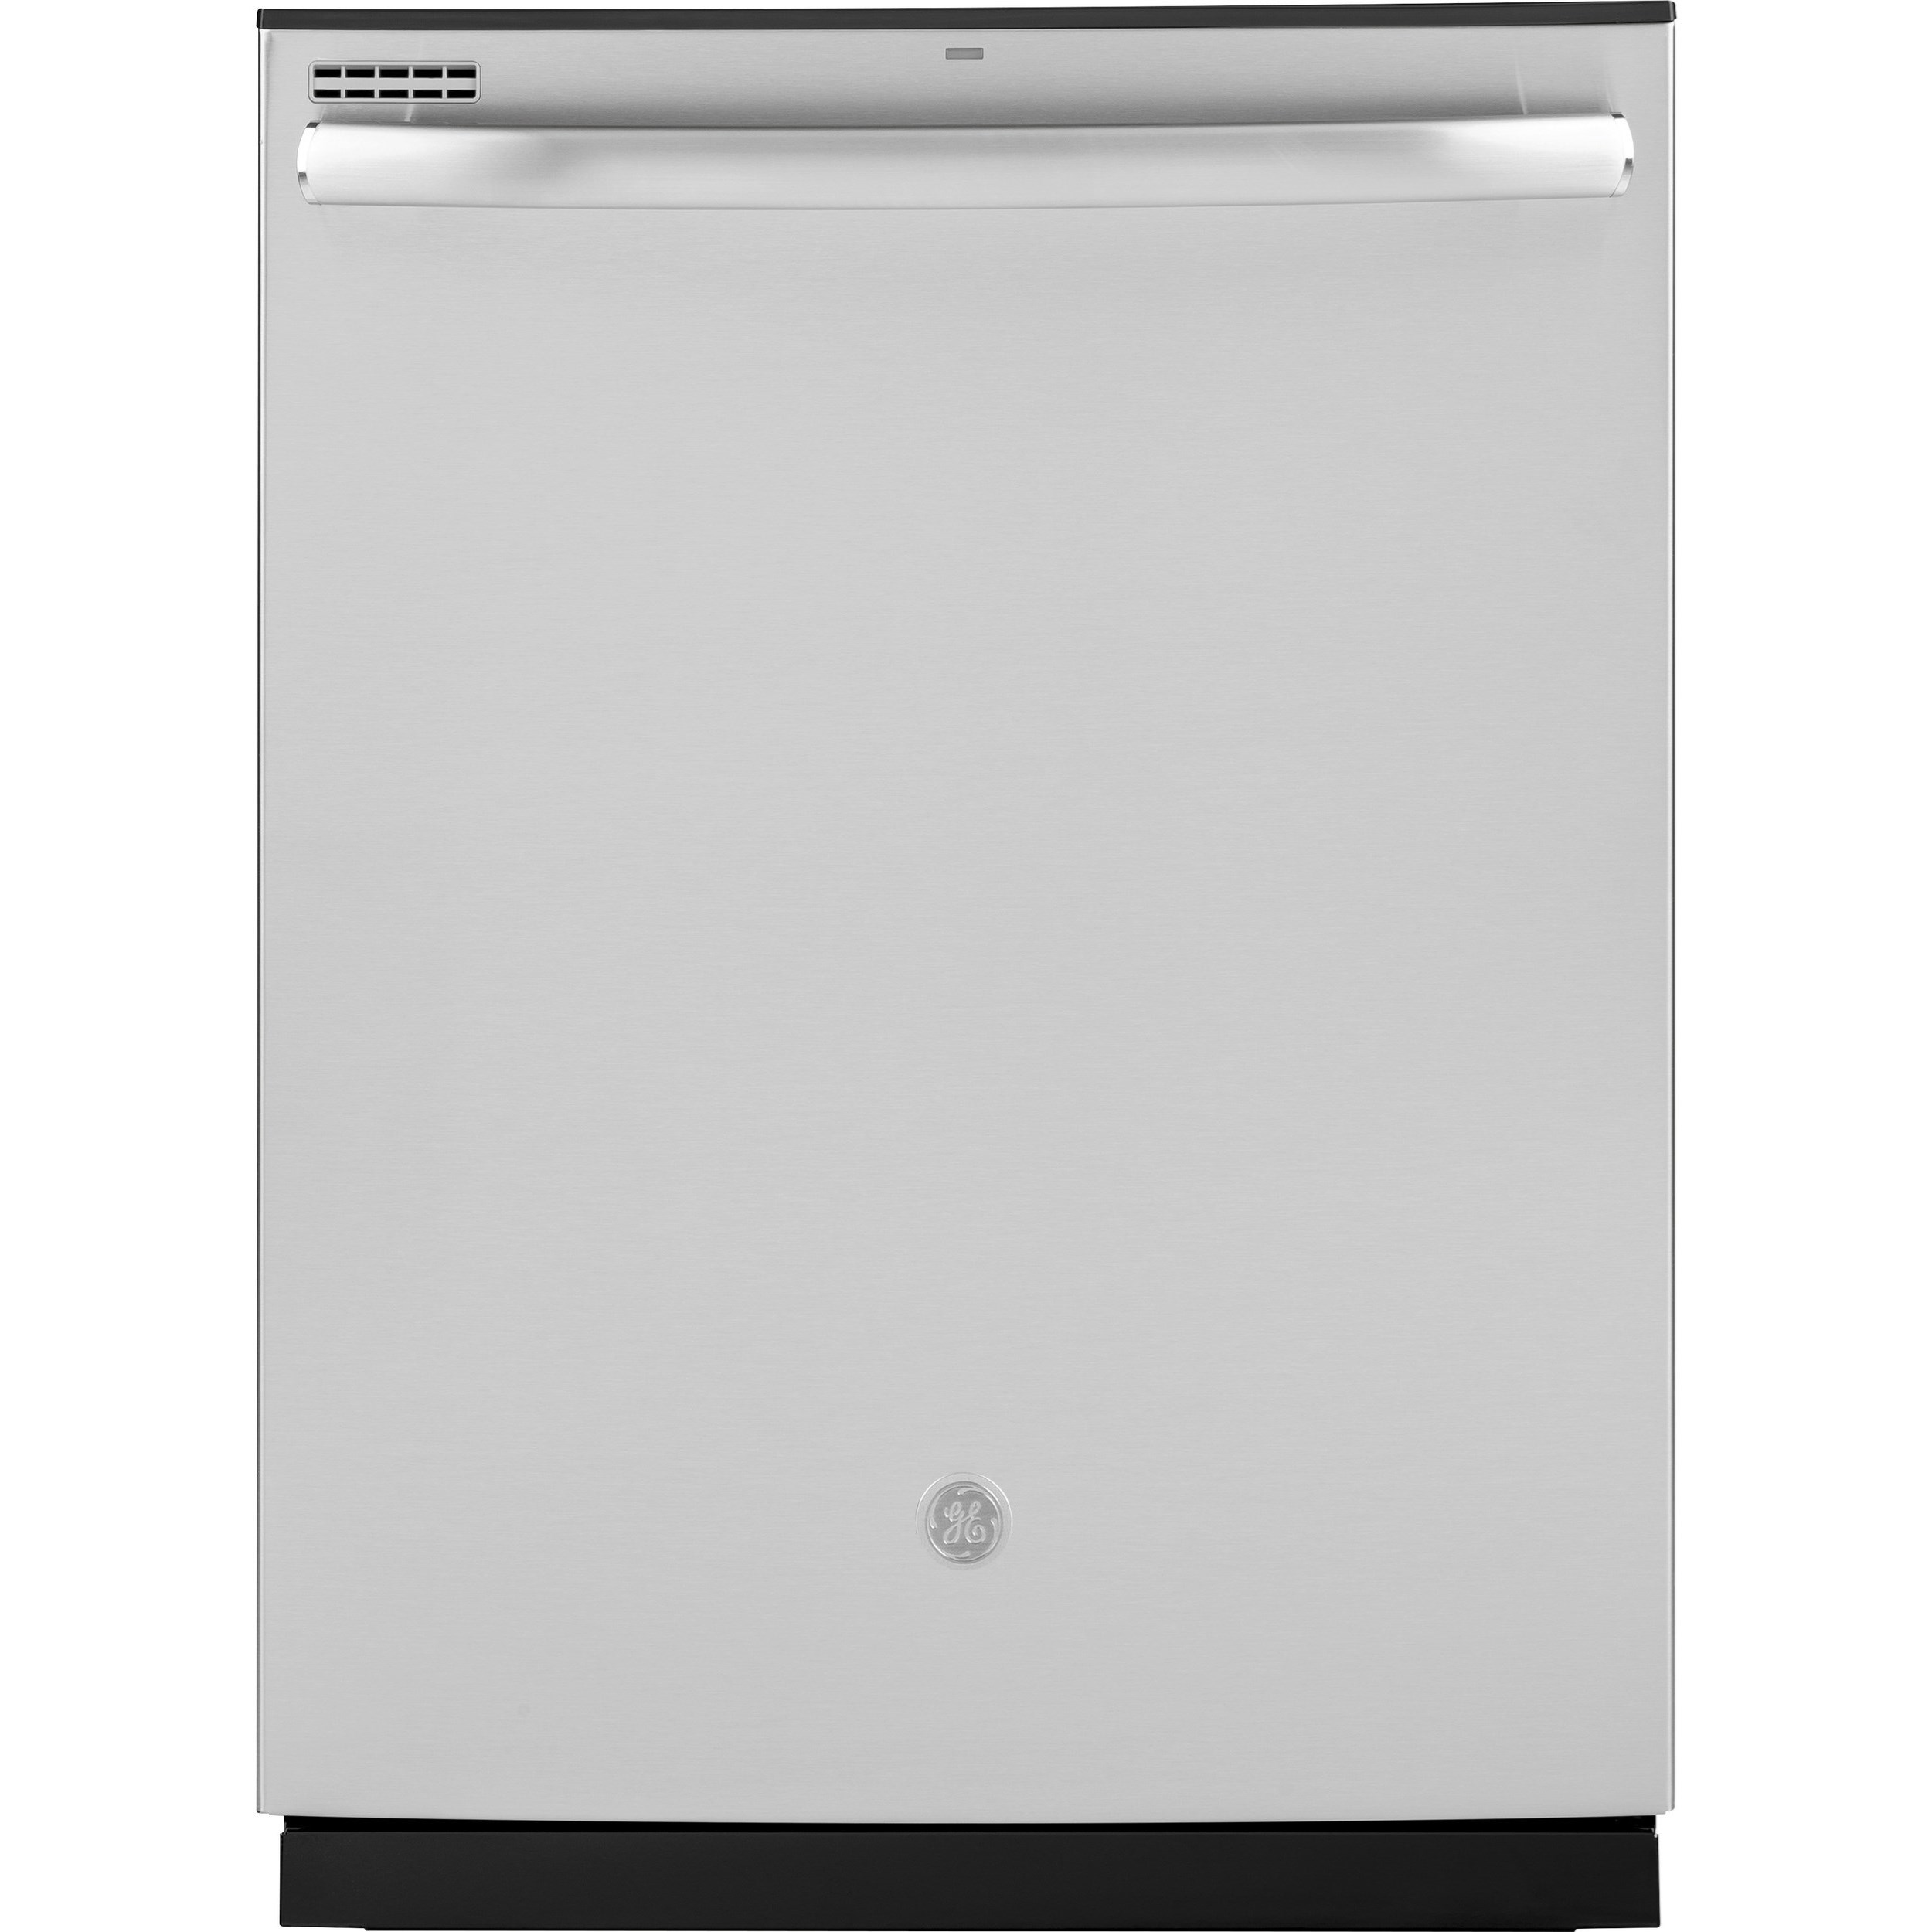 Dishwashers  GE® Dishwasher with Hidden Controls by GE Appliances at Furniture and ApplianceMart